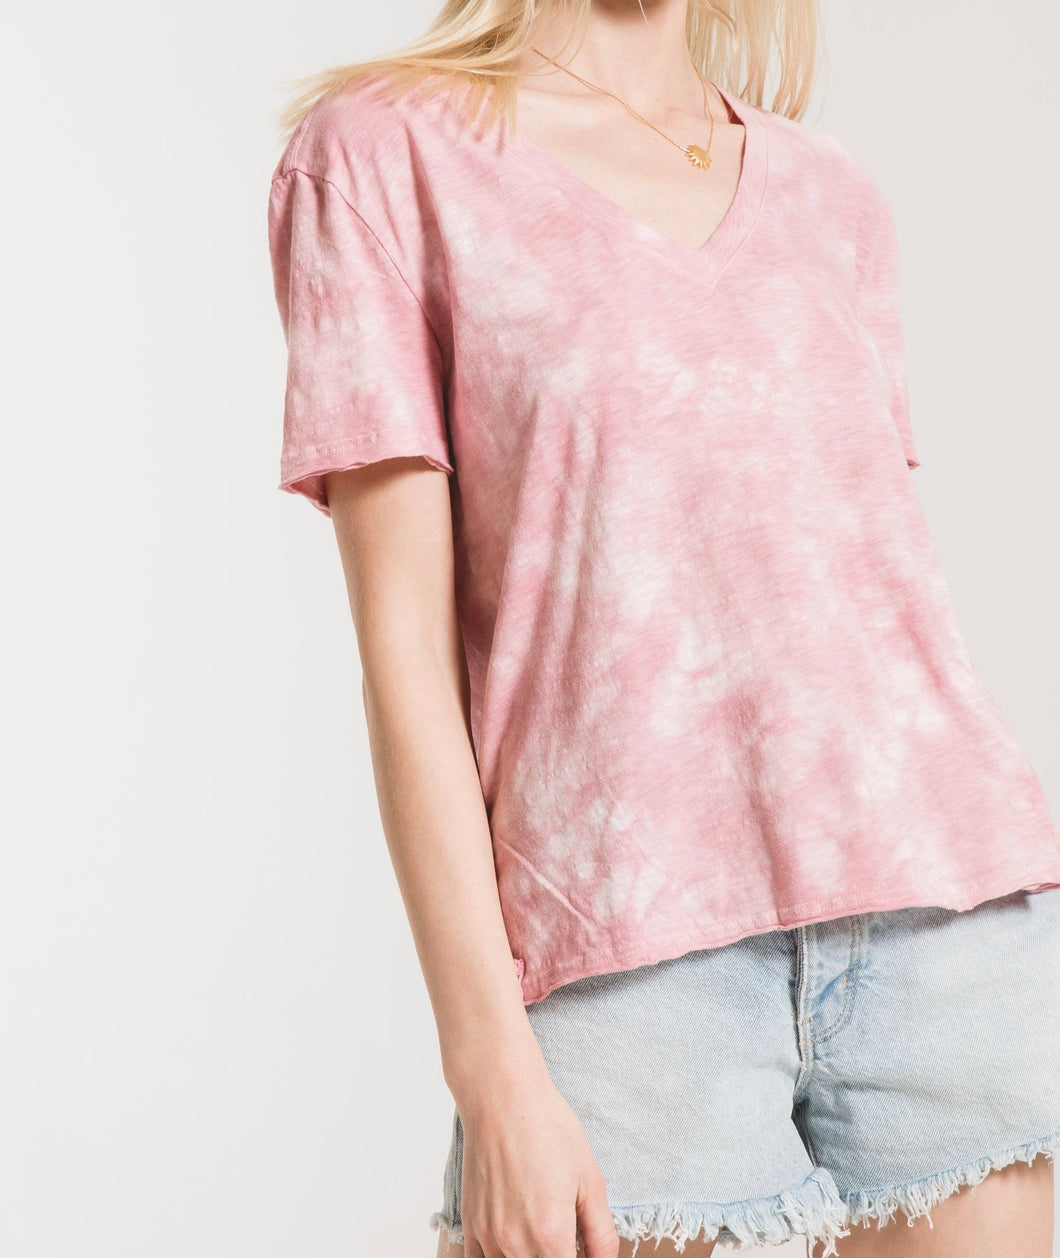 Z Supply Cloud Pink Tie Dye Tee